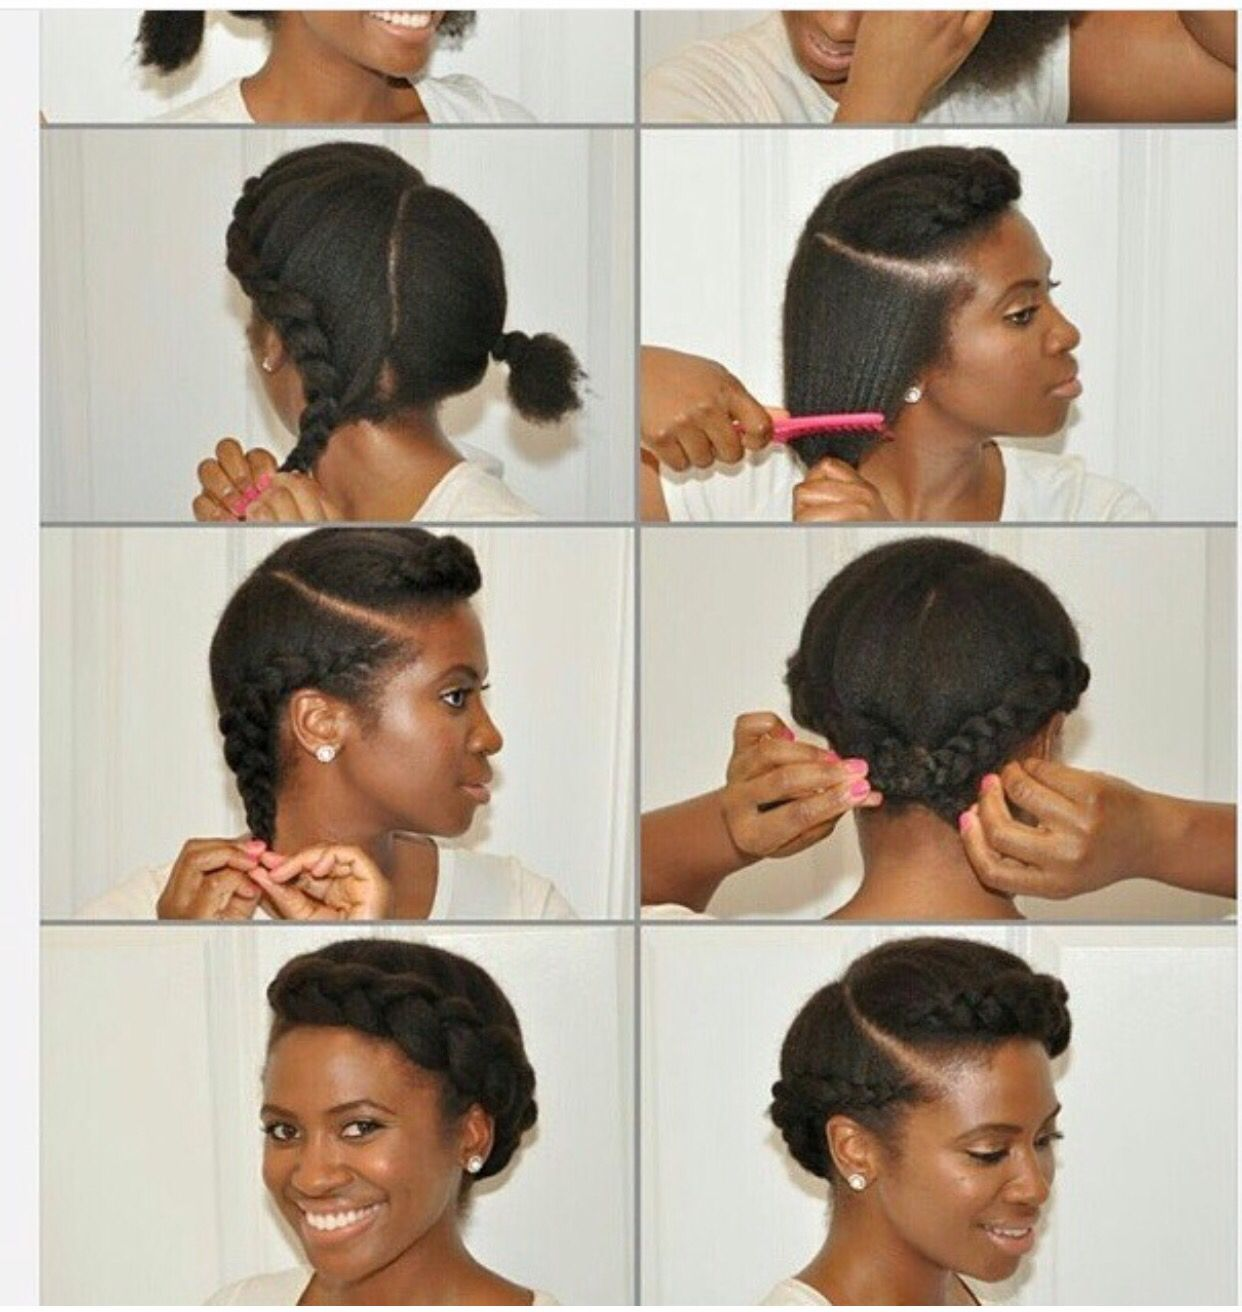 Simple Natural Hair Do Protective Hairstyles For Natural Hair Goddess Hairstyles Natural Hair Styles